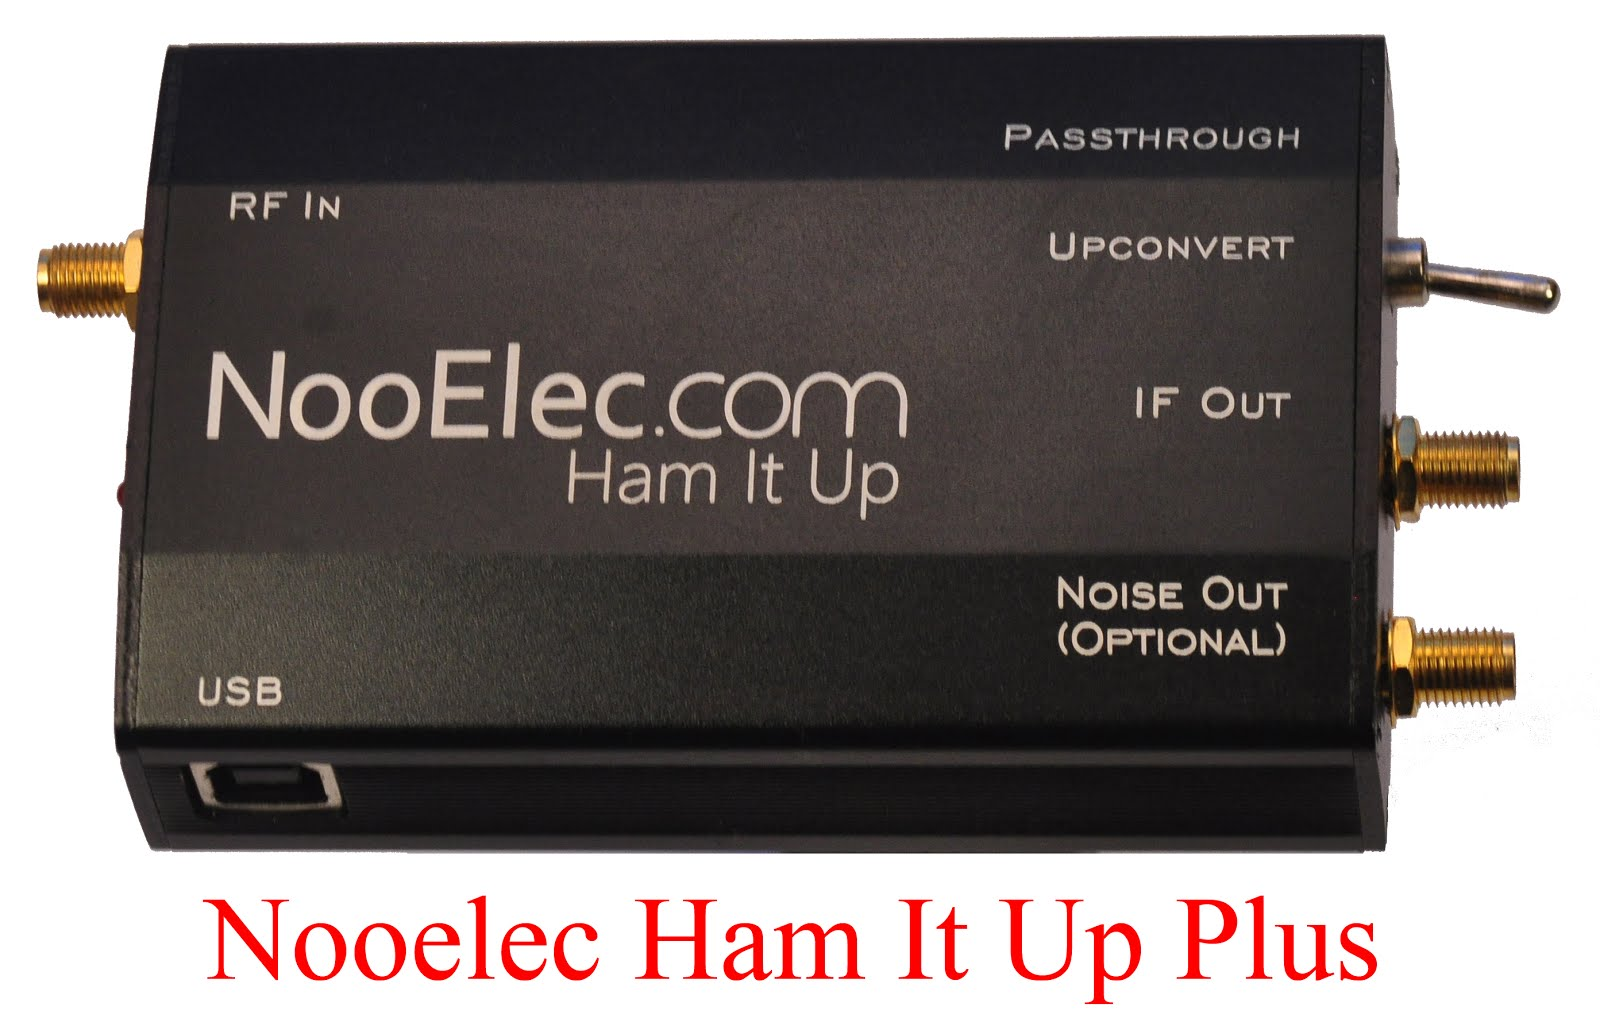 Nooelec Ham It Up Plus upconverter / noise source | Radio for Everyone